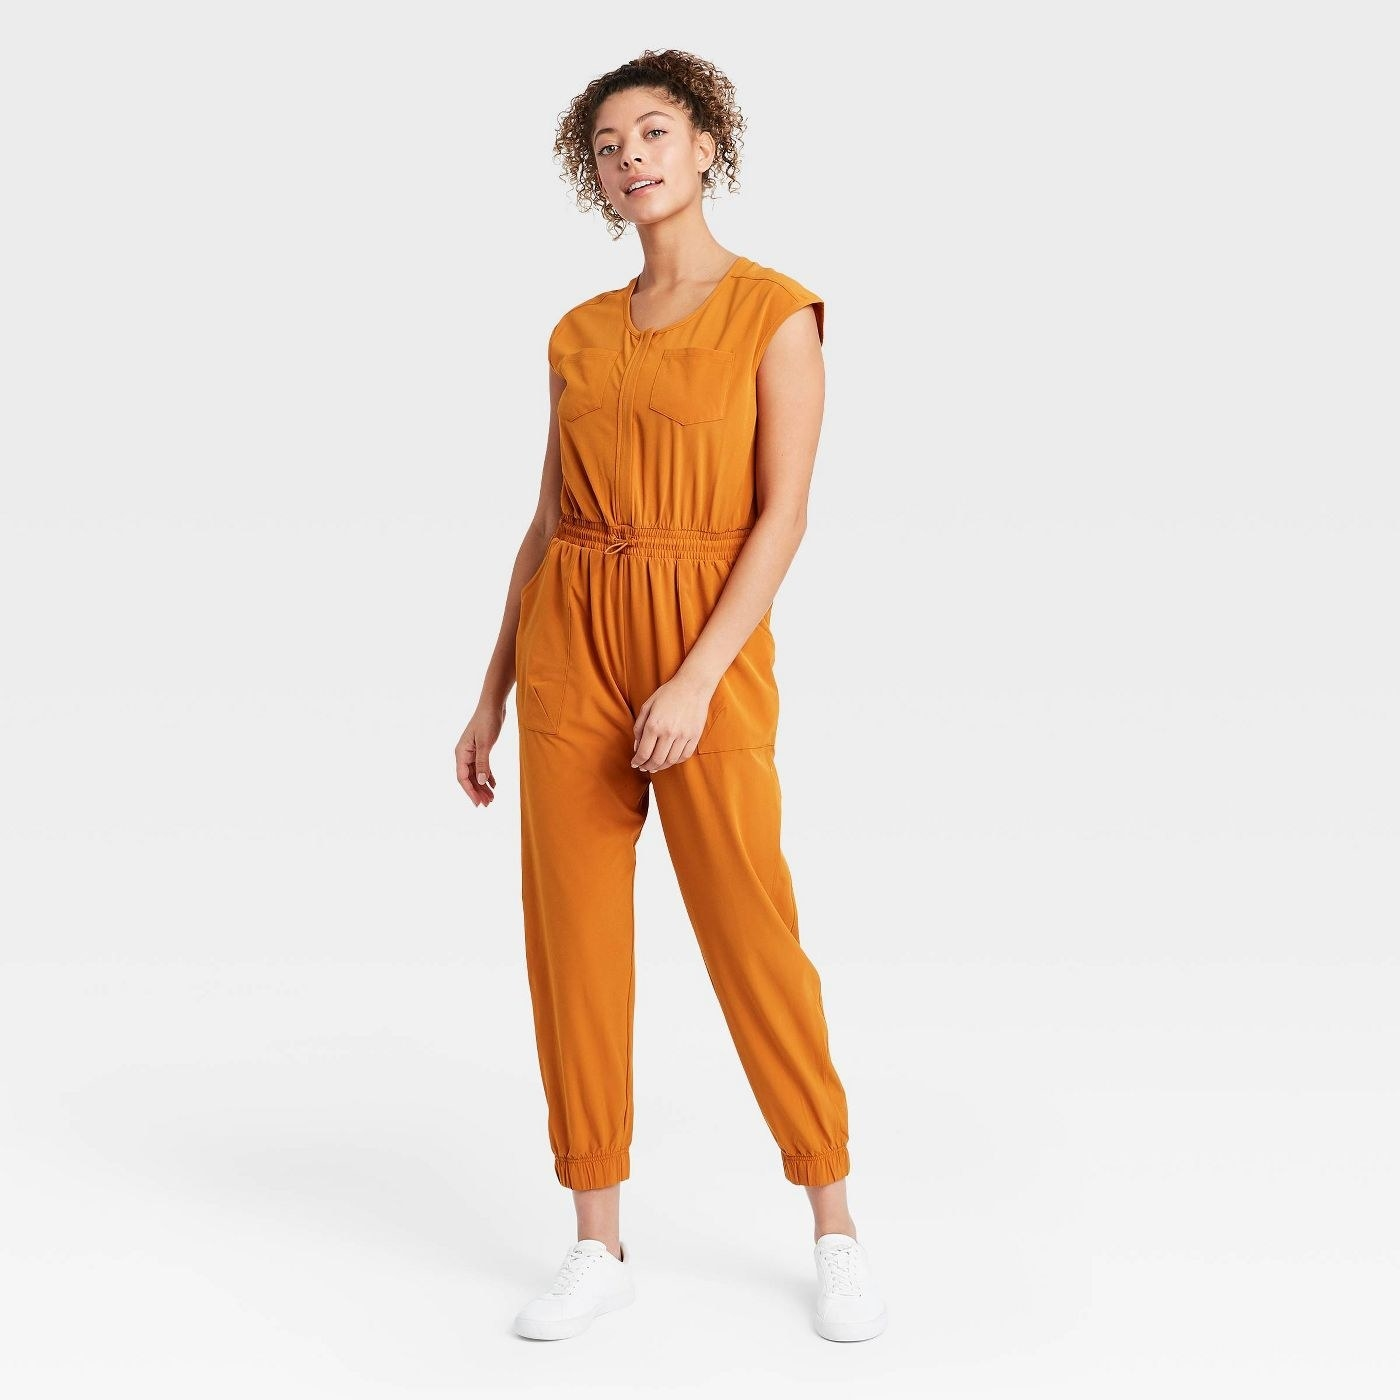 Model wearing mustard yellow jumpsuit cuffed at the ankle